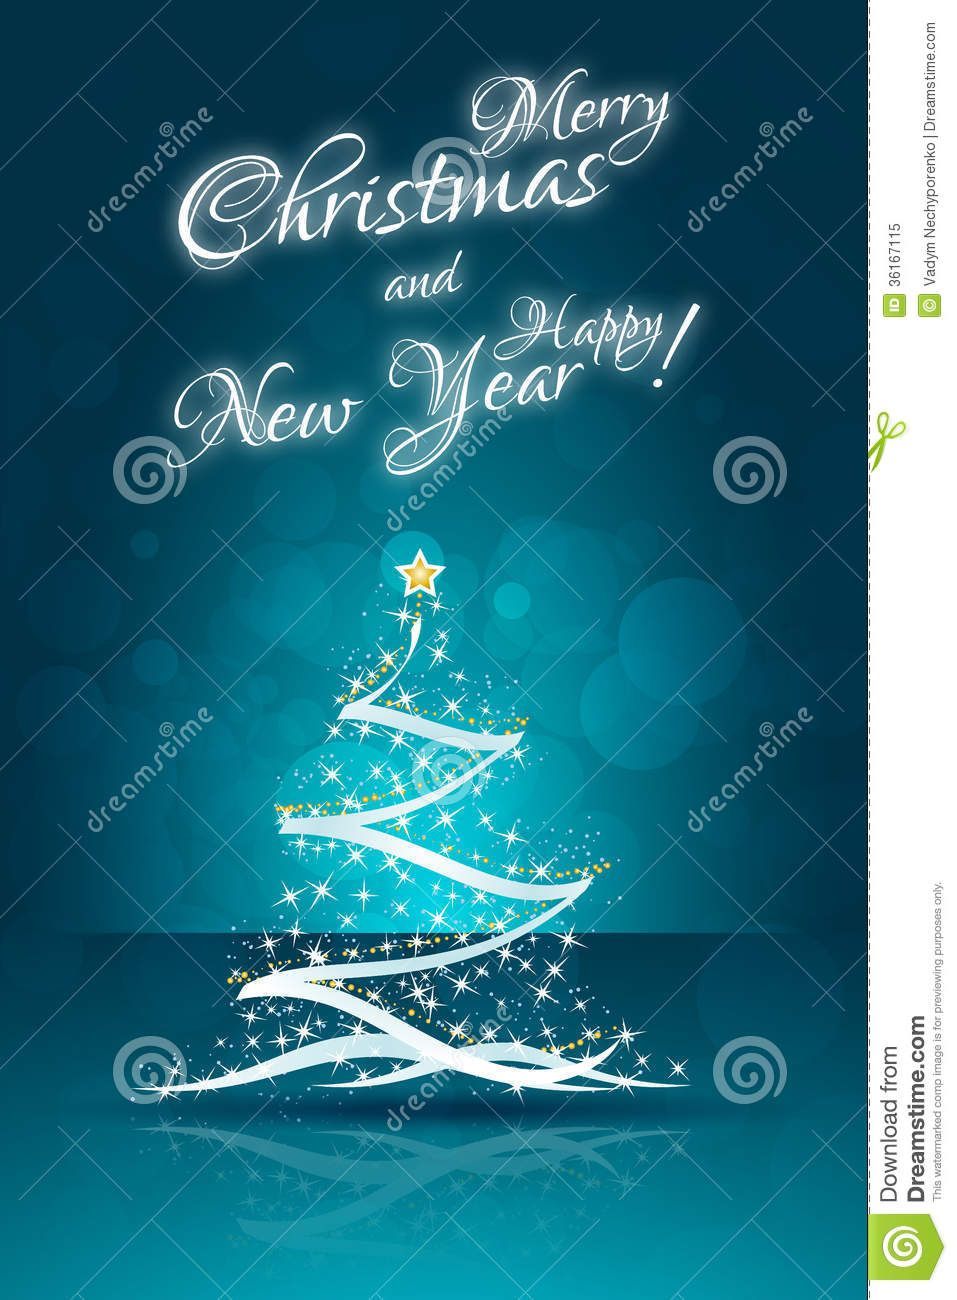 Christmas Card Templates Christmas Card Template With Abstract